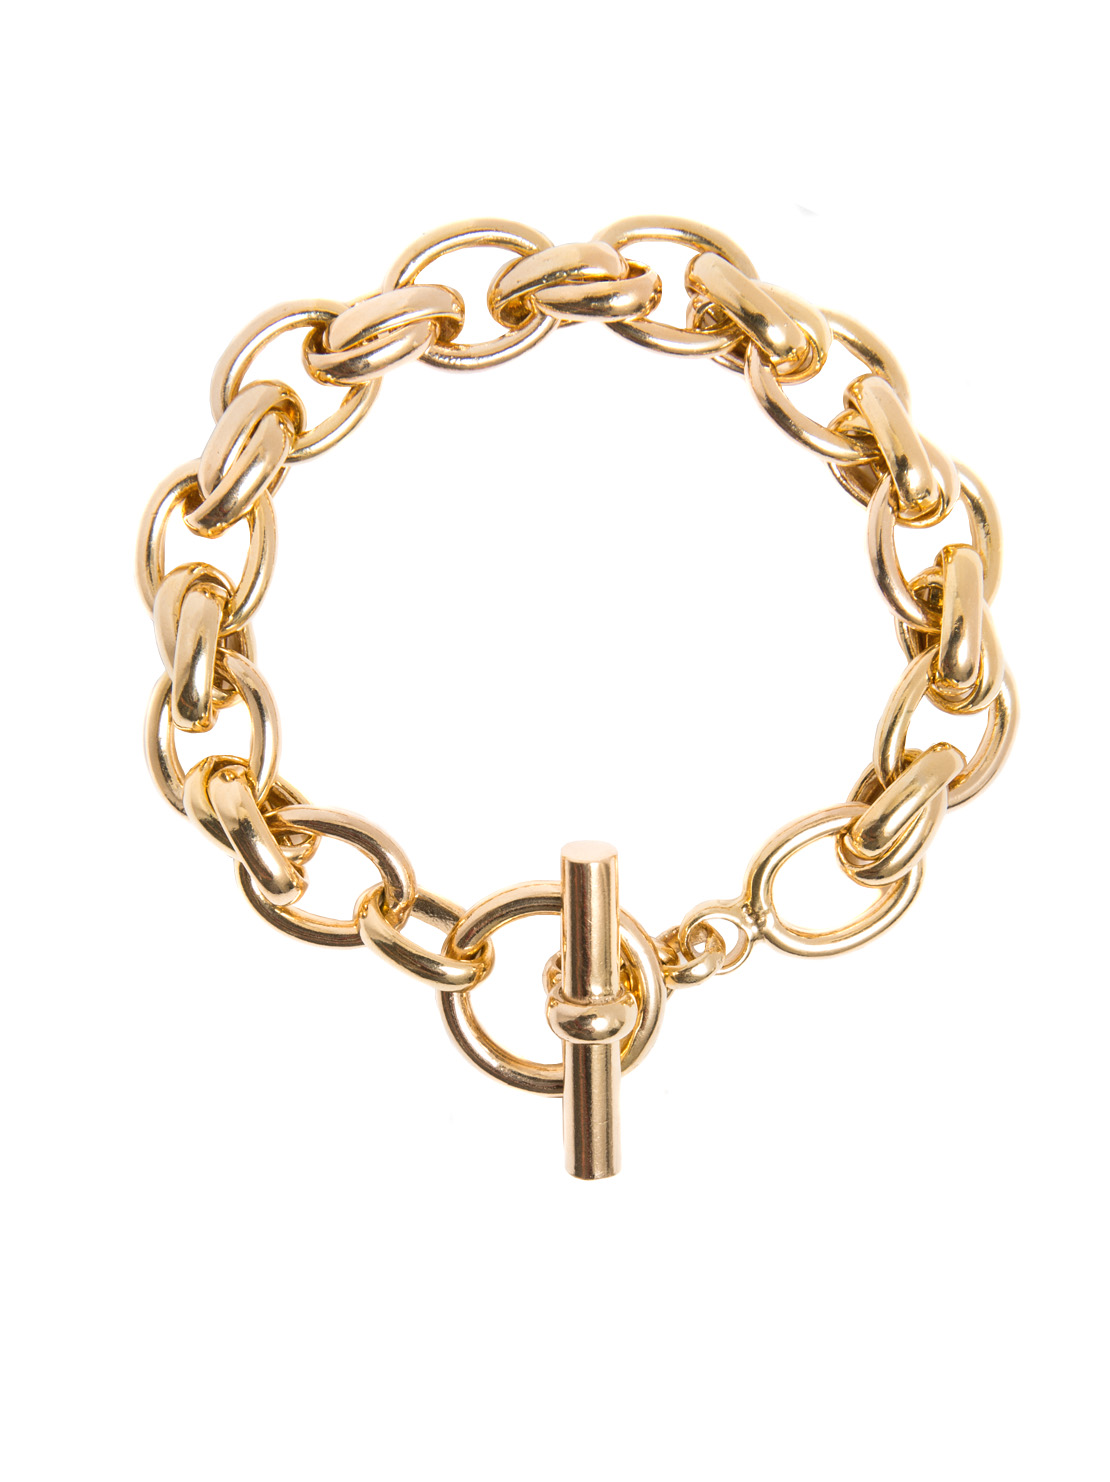 Large Gold Double Linked Bracelet